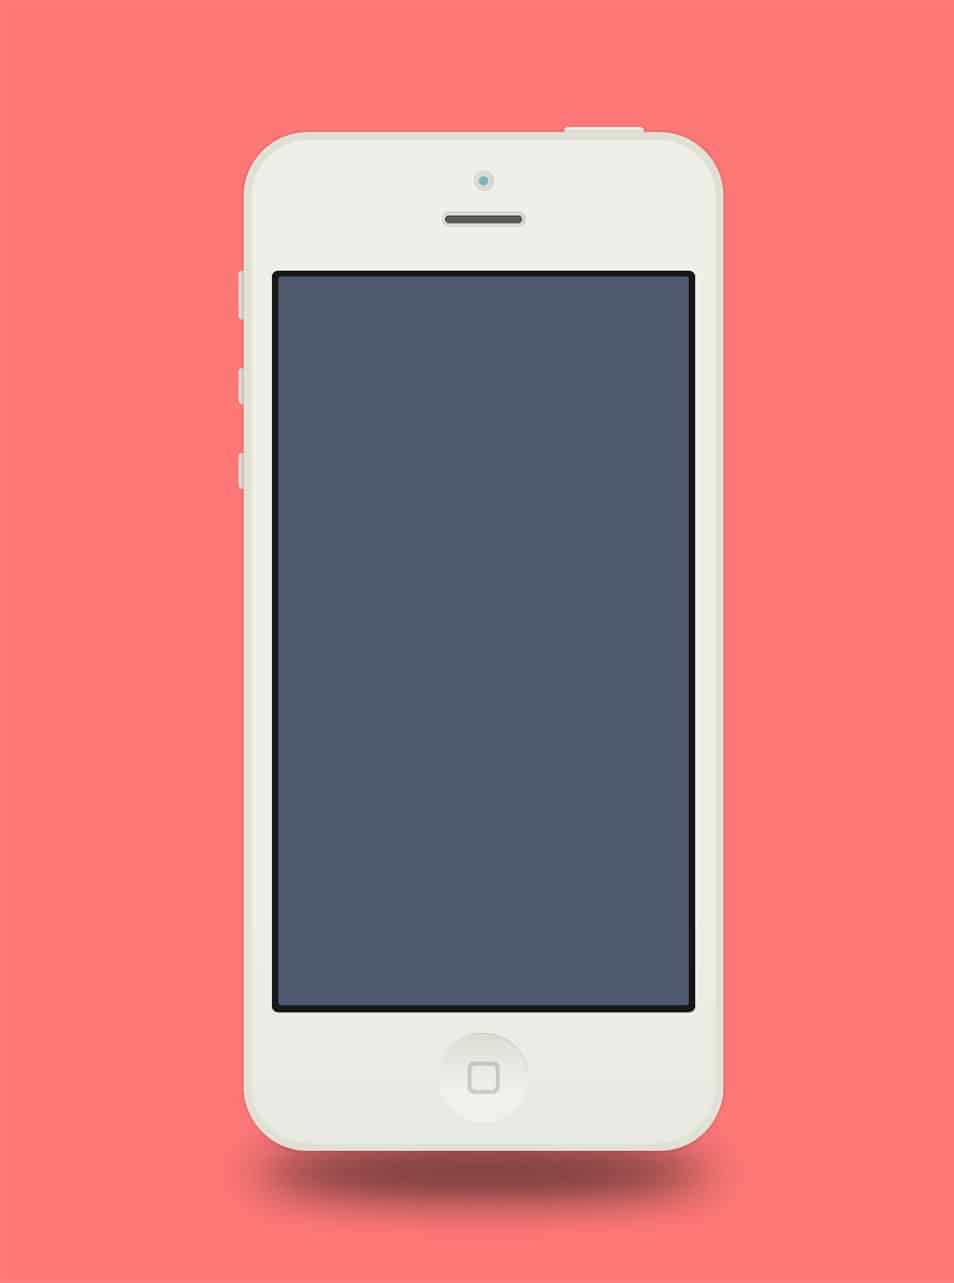 Flat iPhone 5 Adobe Fireworks Template